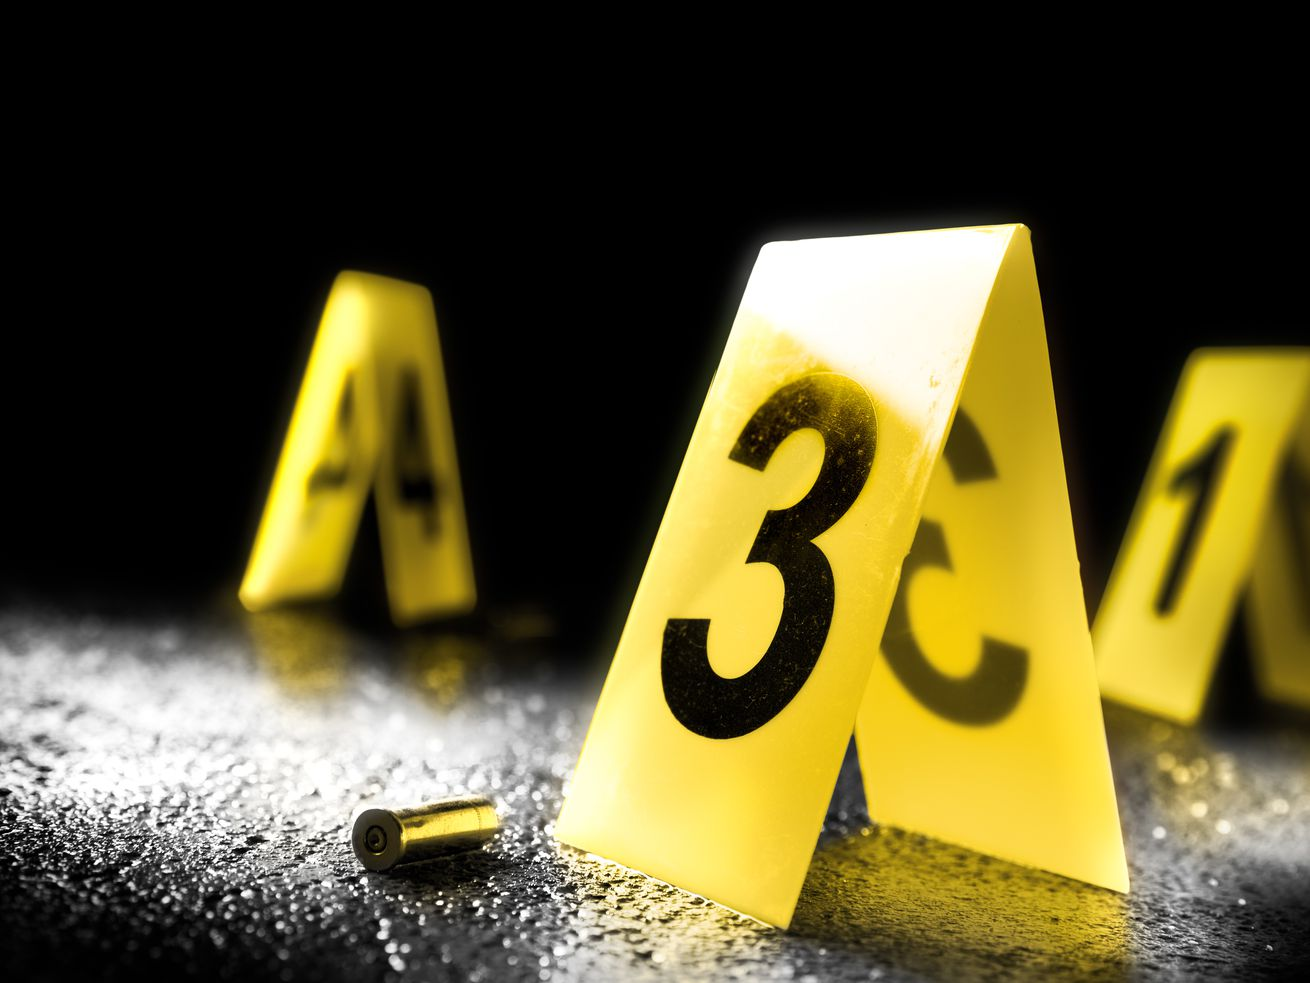 A 16-year-old boy was wounded in a shooting May 20, 2021, on the far South Side.